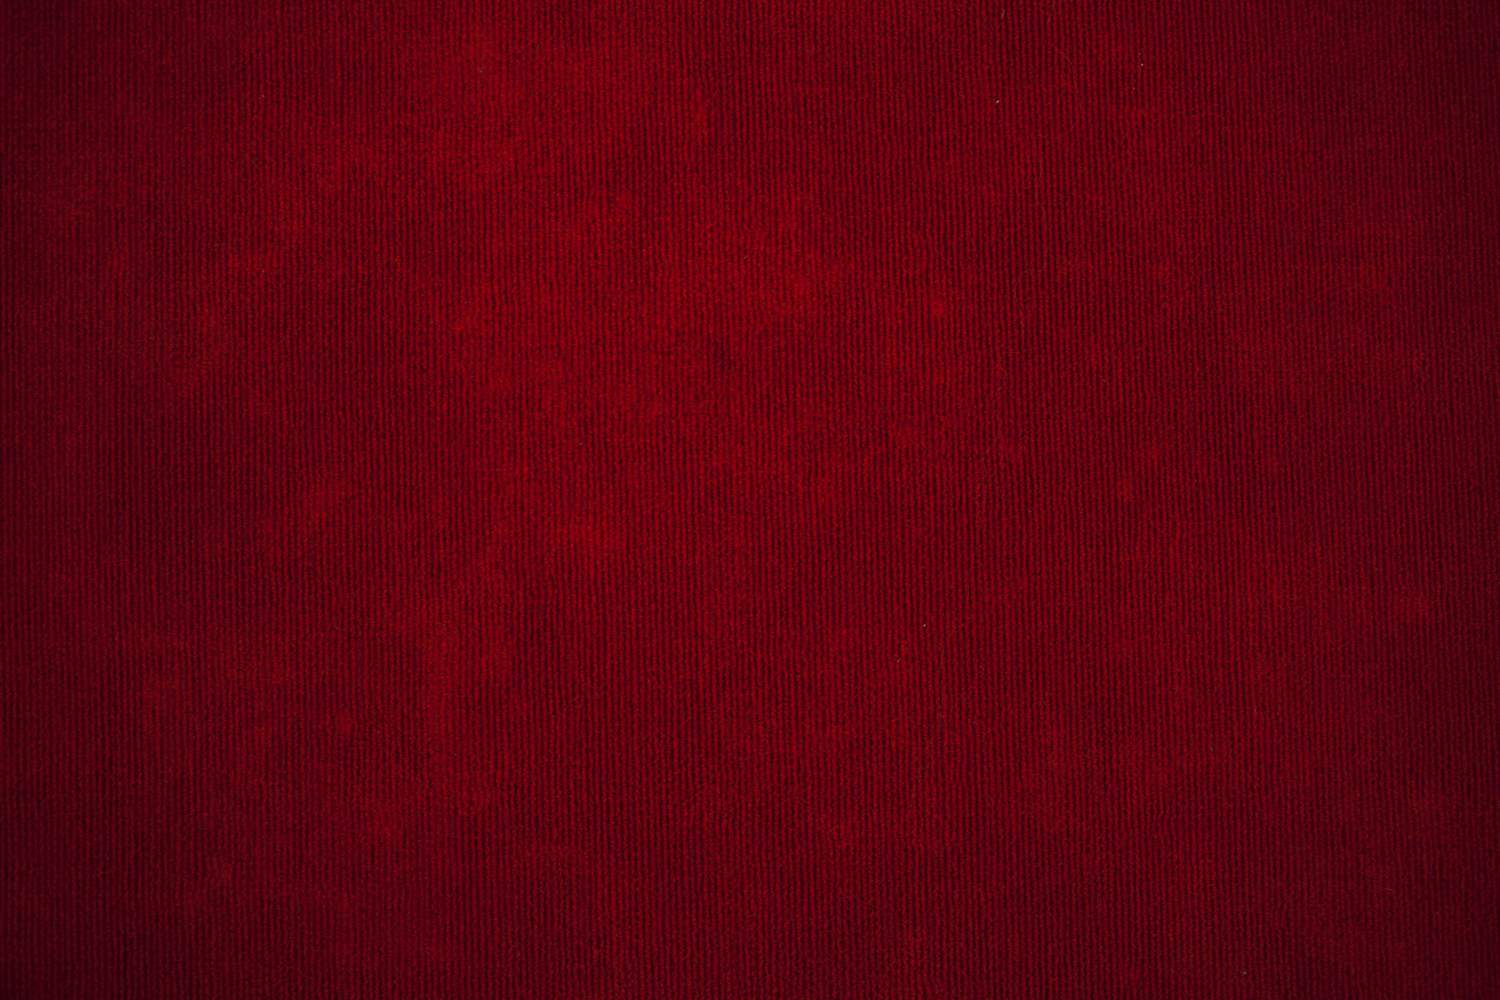 download red velvet wallpaper hd backgrounds download itl cat red velvet wallpaper hd backgrounds